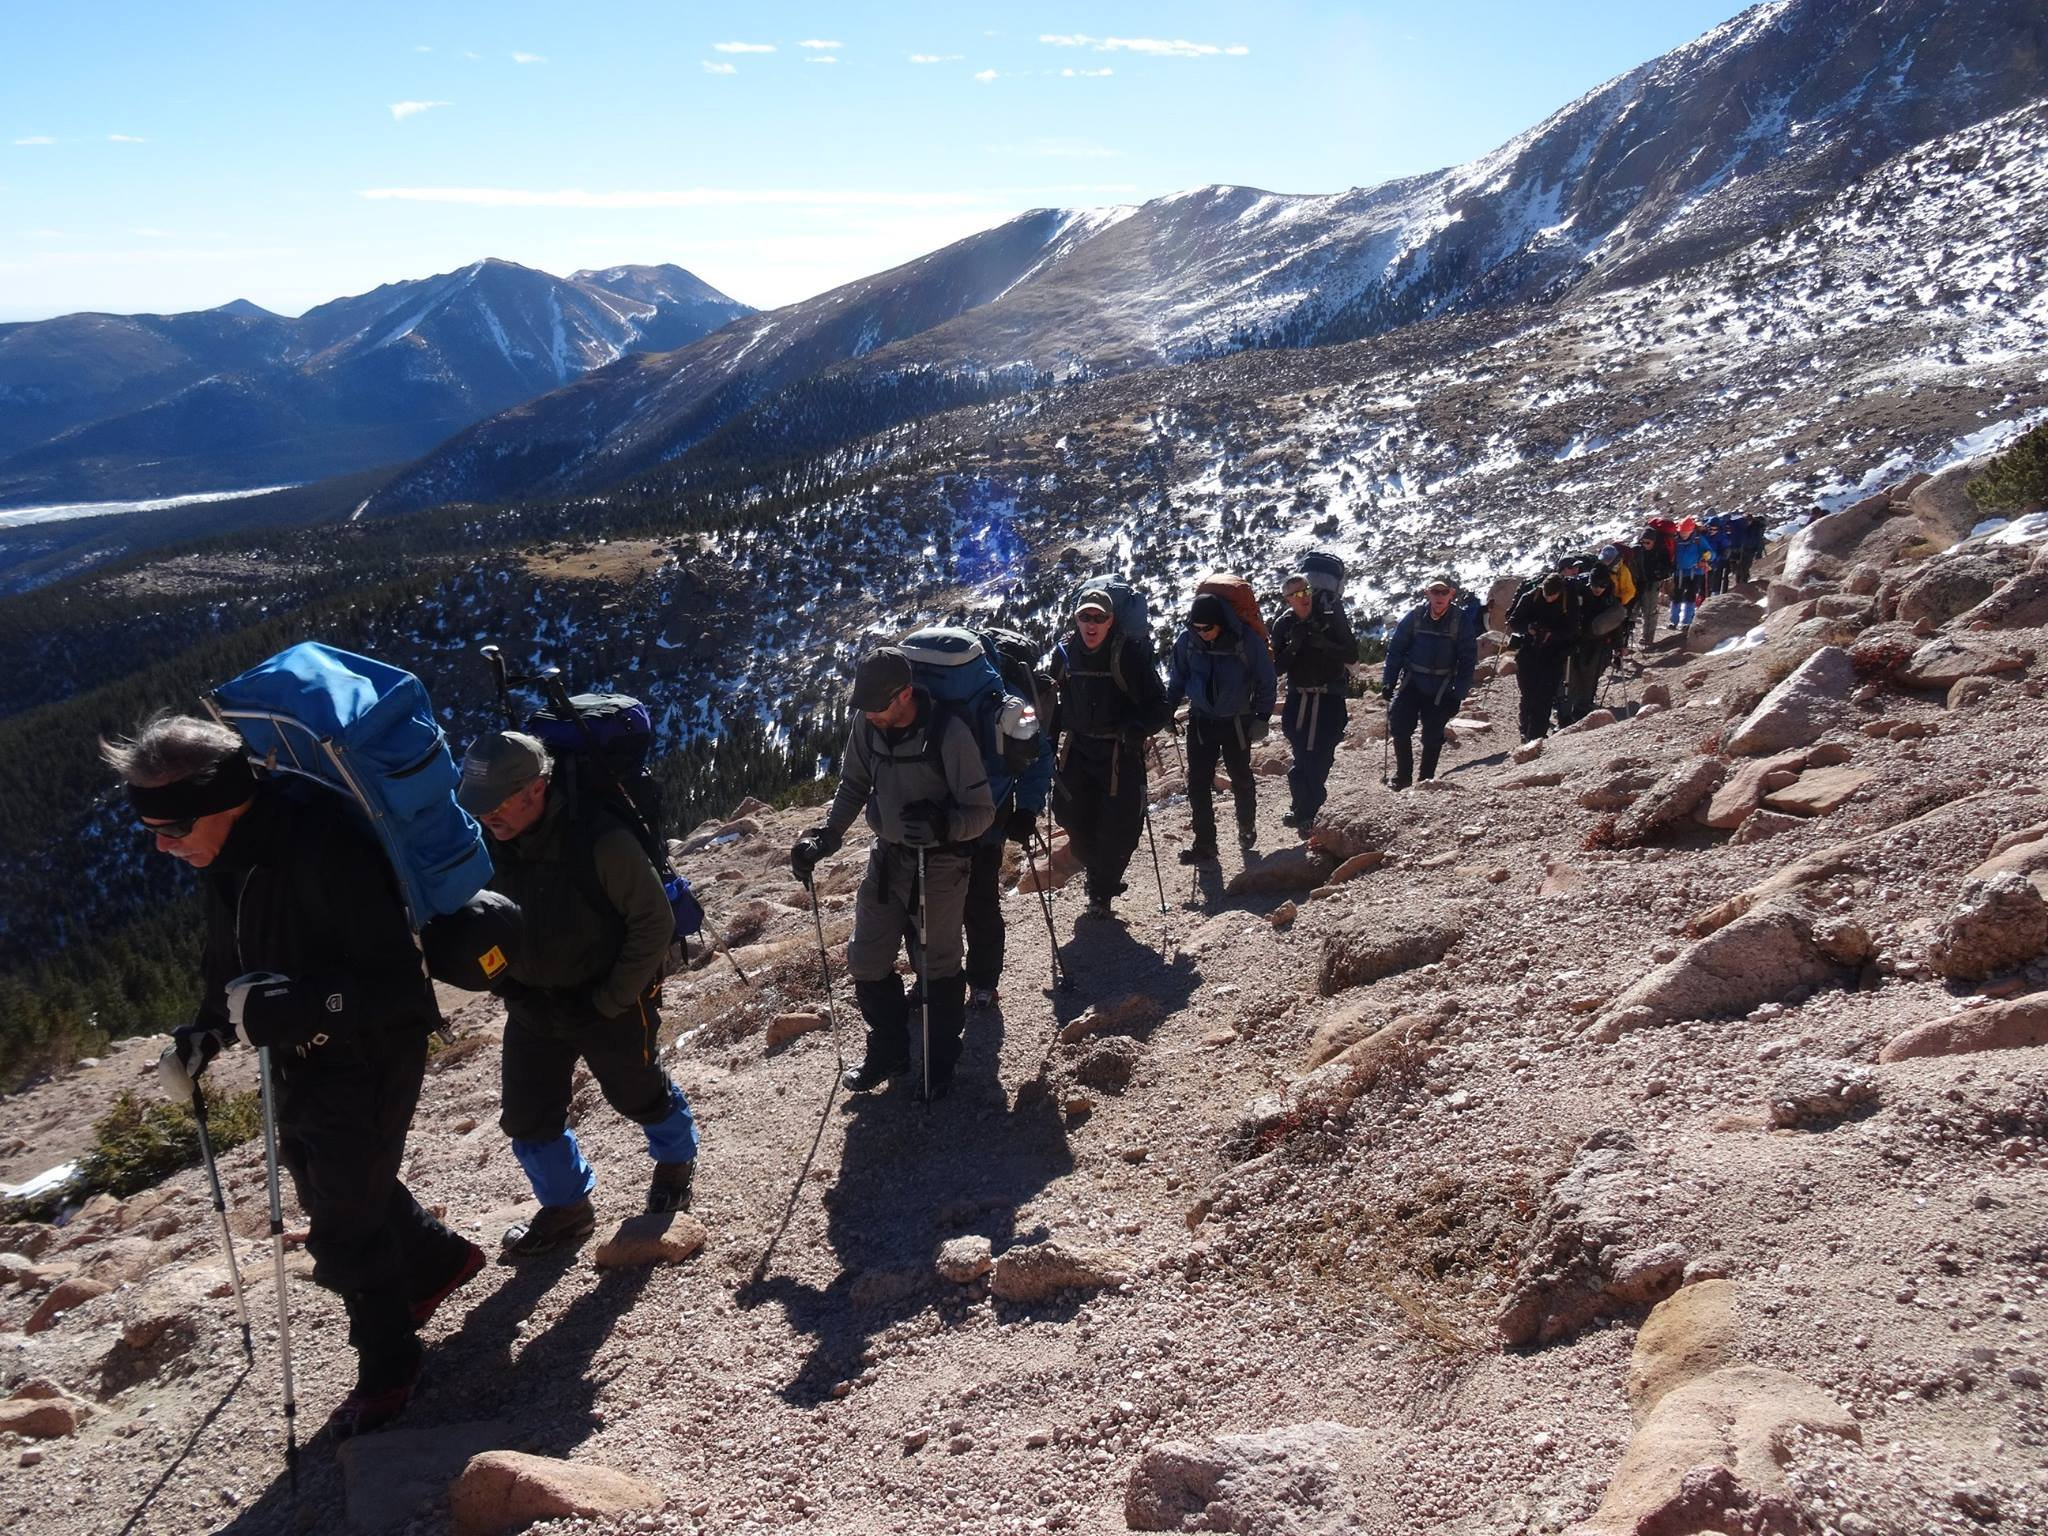 The AdAmAn club on its 2016 climb up Pikes Peak.